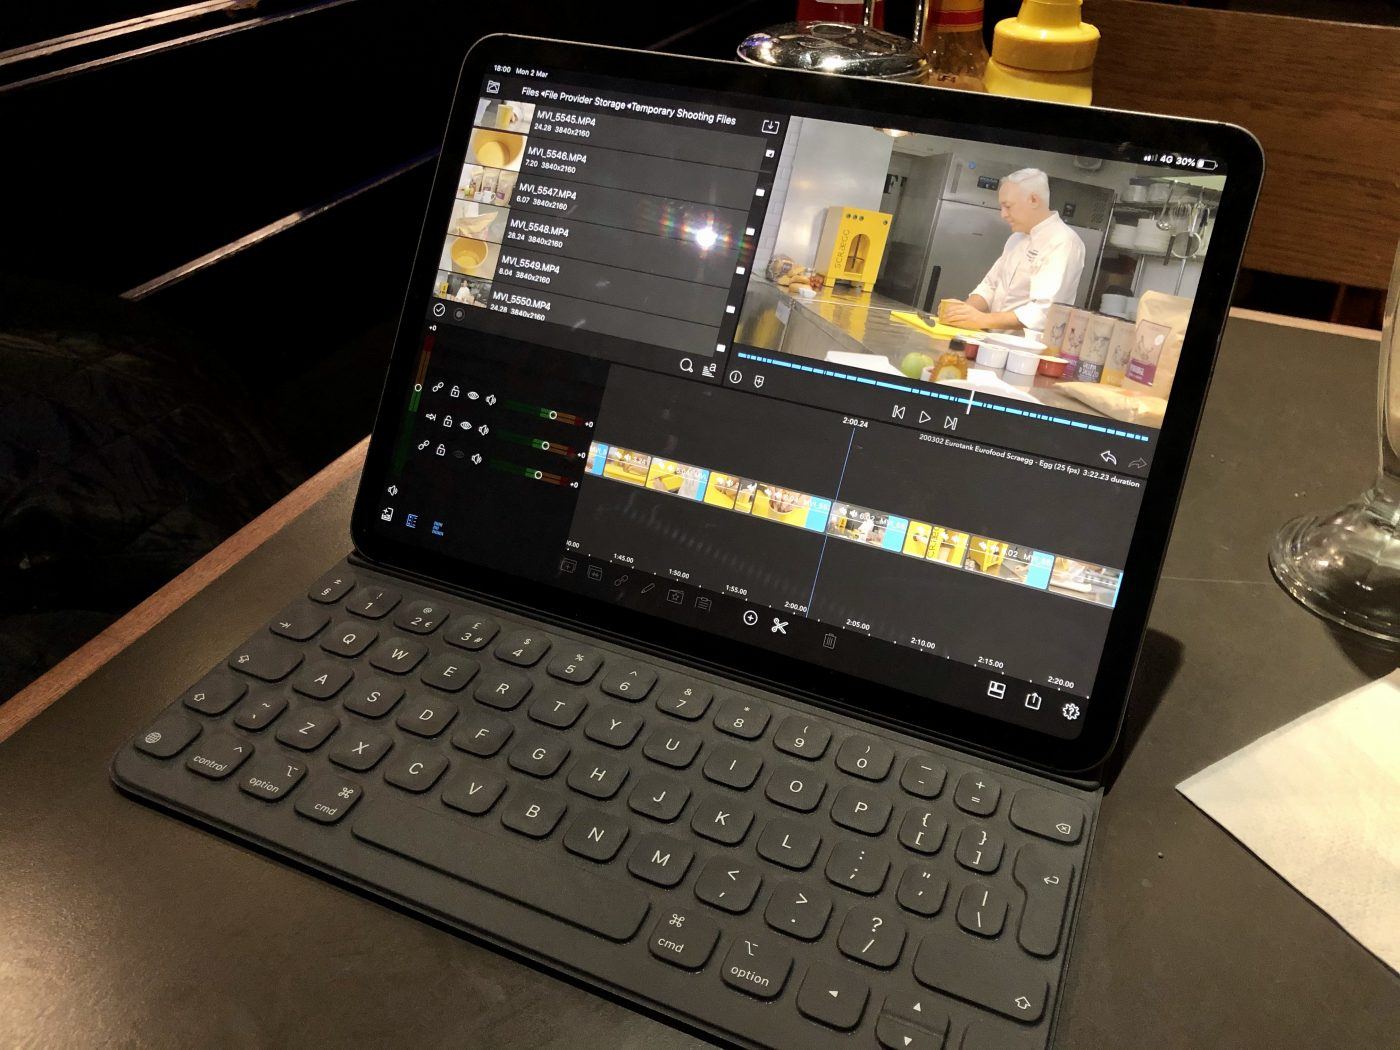 Using an iPad (an iPad!!) to assemble rough cuts of a video earlier this year